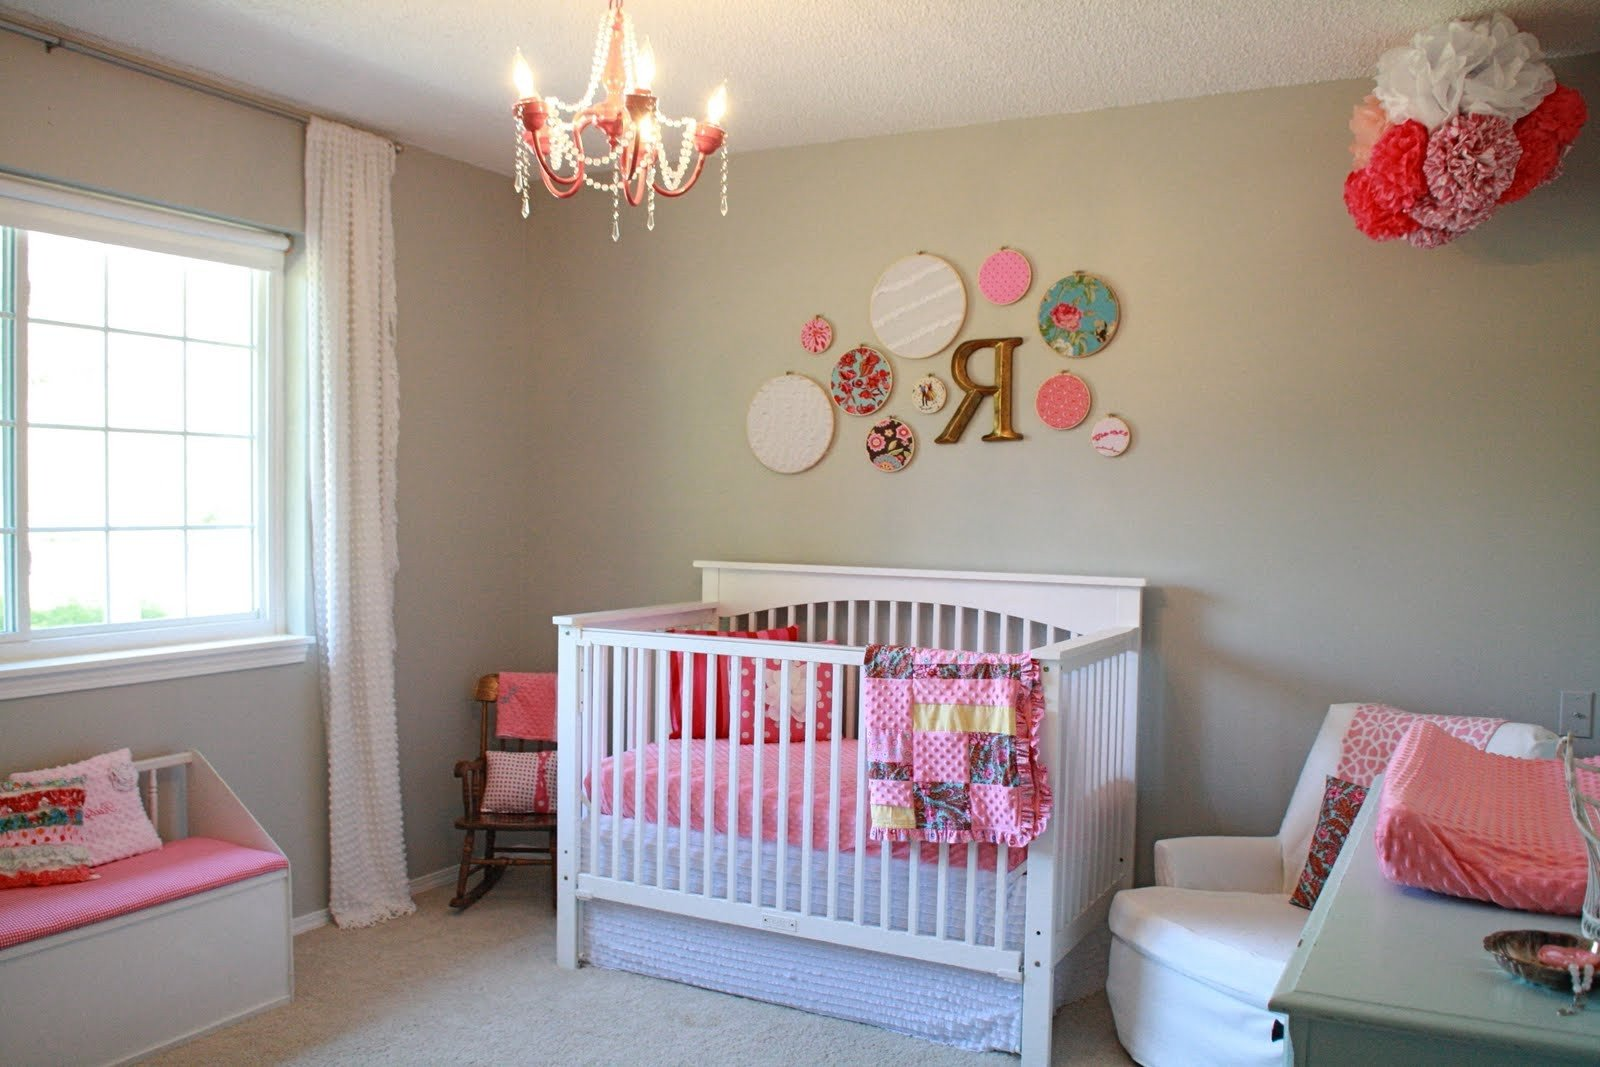 Baby Girl Room Decor Ideas Inspirational Baby Girl Room Decor Ideas